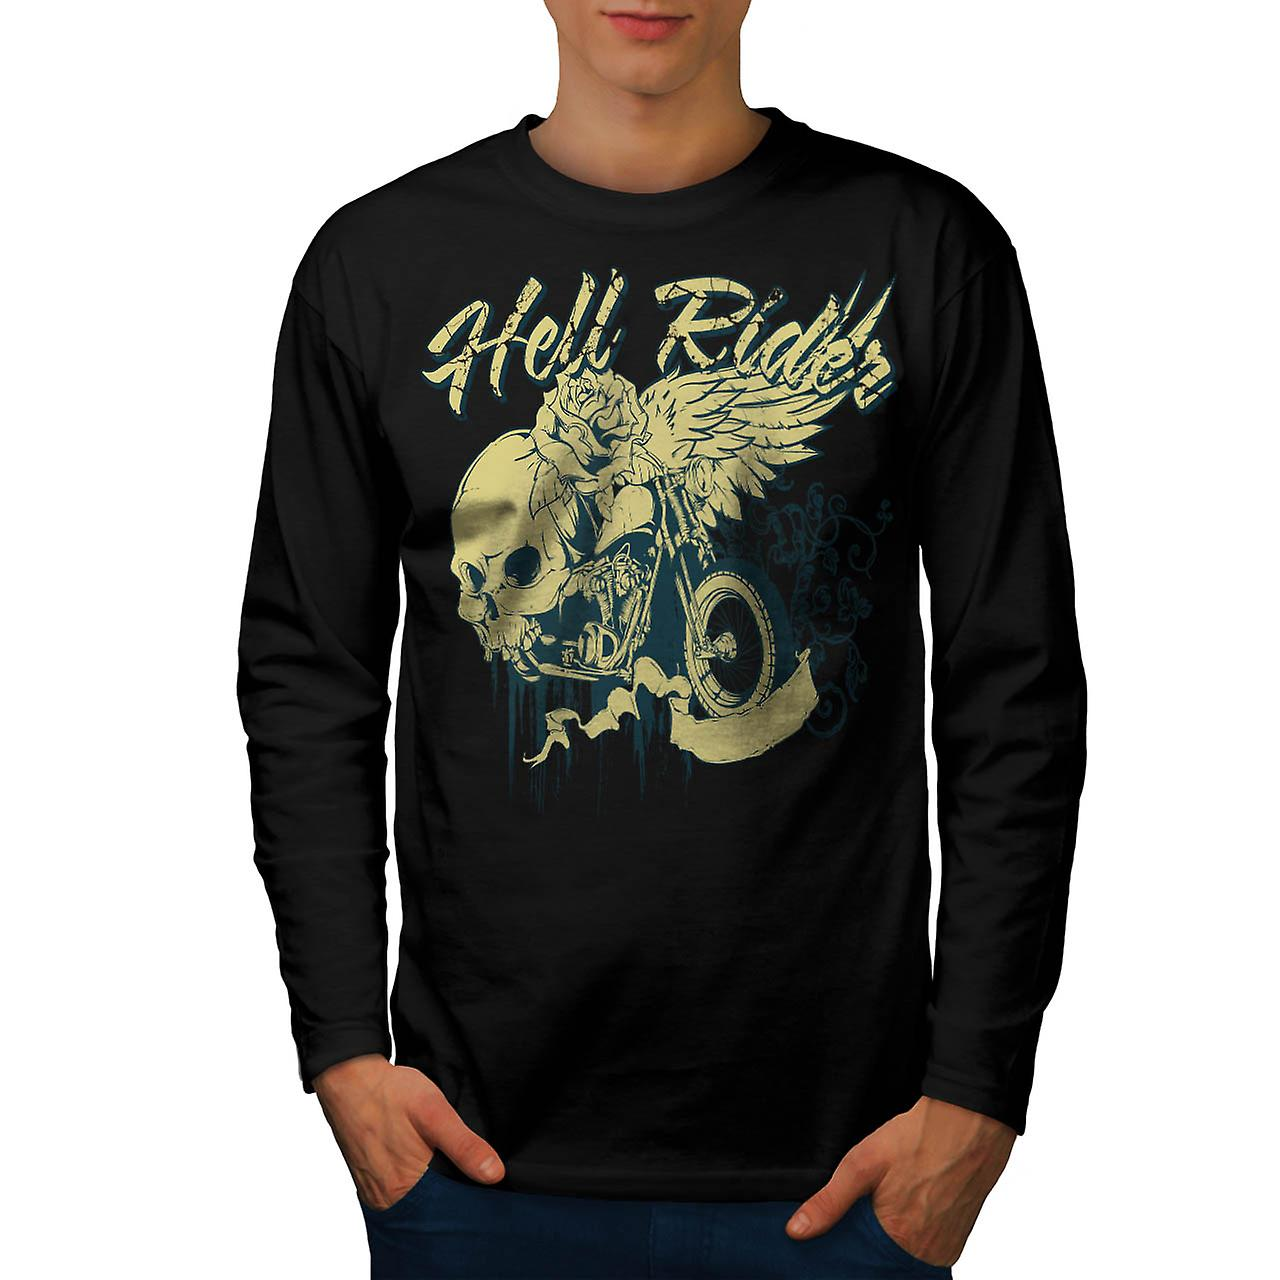 Hell Rider Biker Life Rose Skull Men Black Long Sleeve T-shirt | Wellcoda